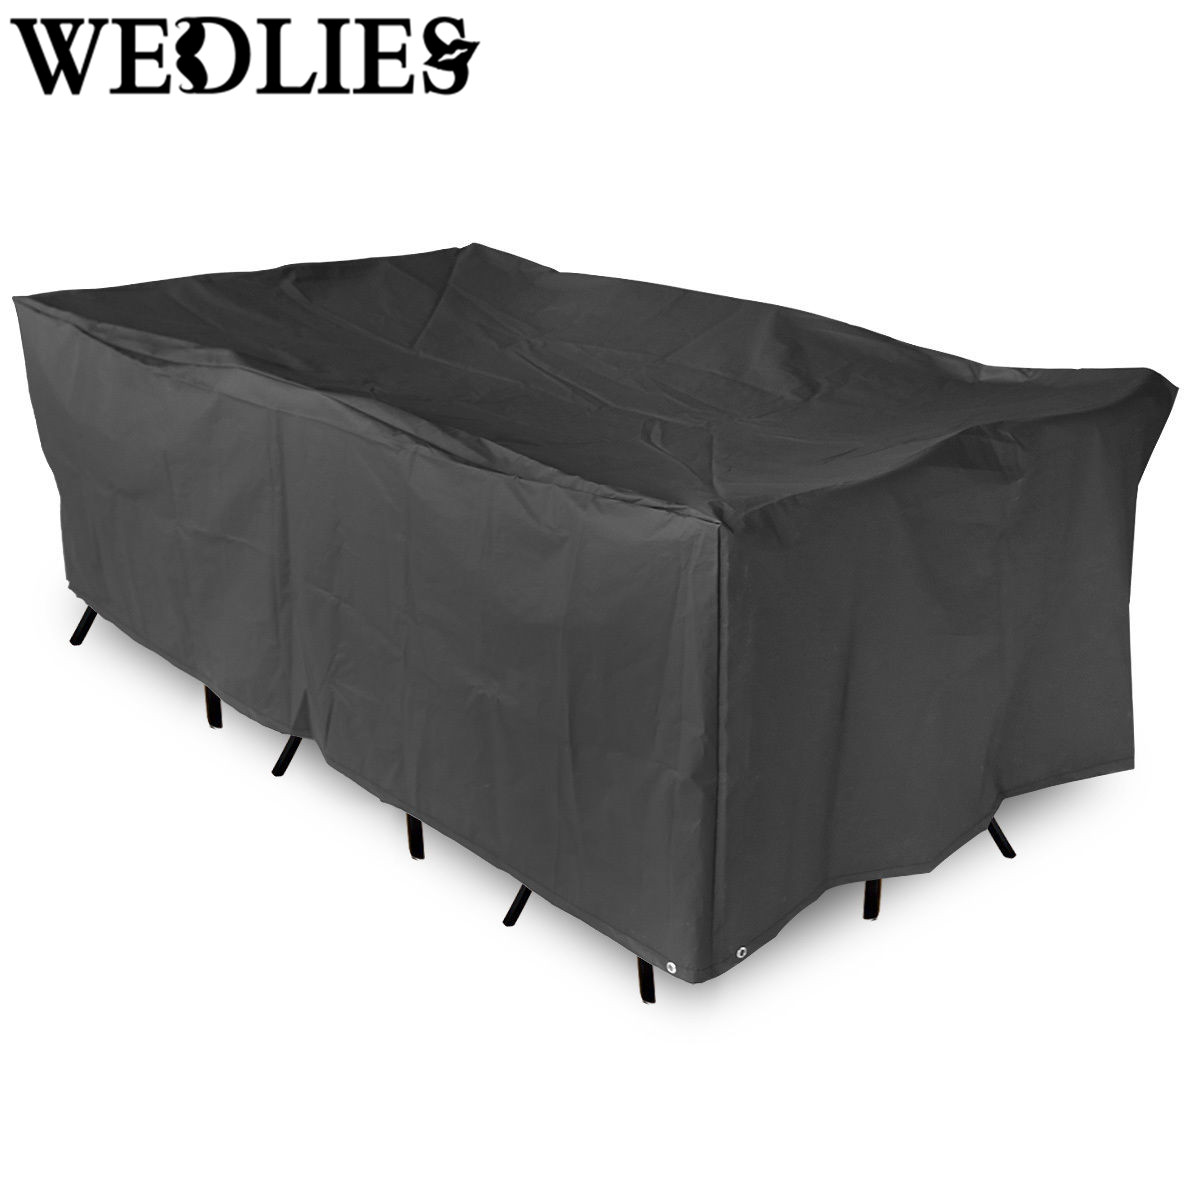 Marvelous Black Polyester Garden Patio Table Cover Waterproof Outdoor Furniture  Shelter Dustproof Protective Cover Home Textiles Supplies